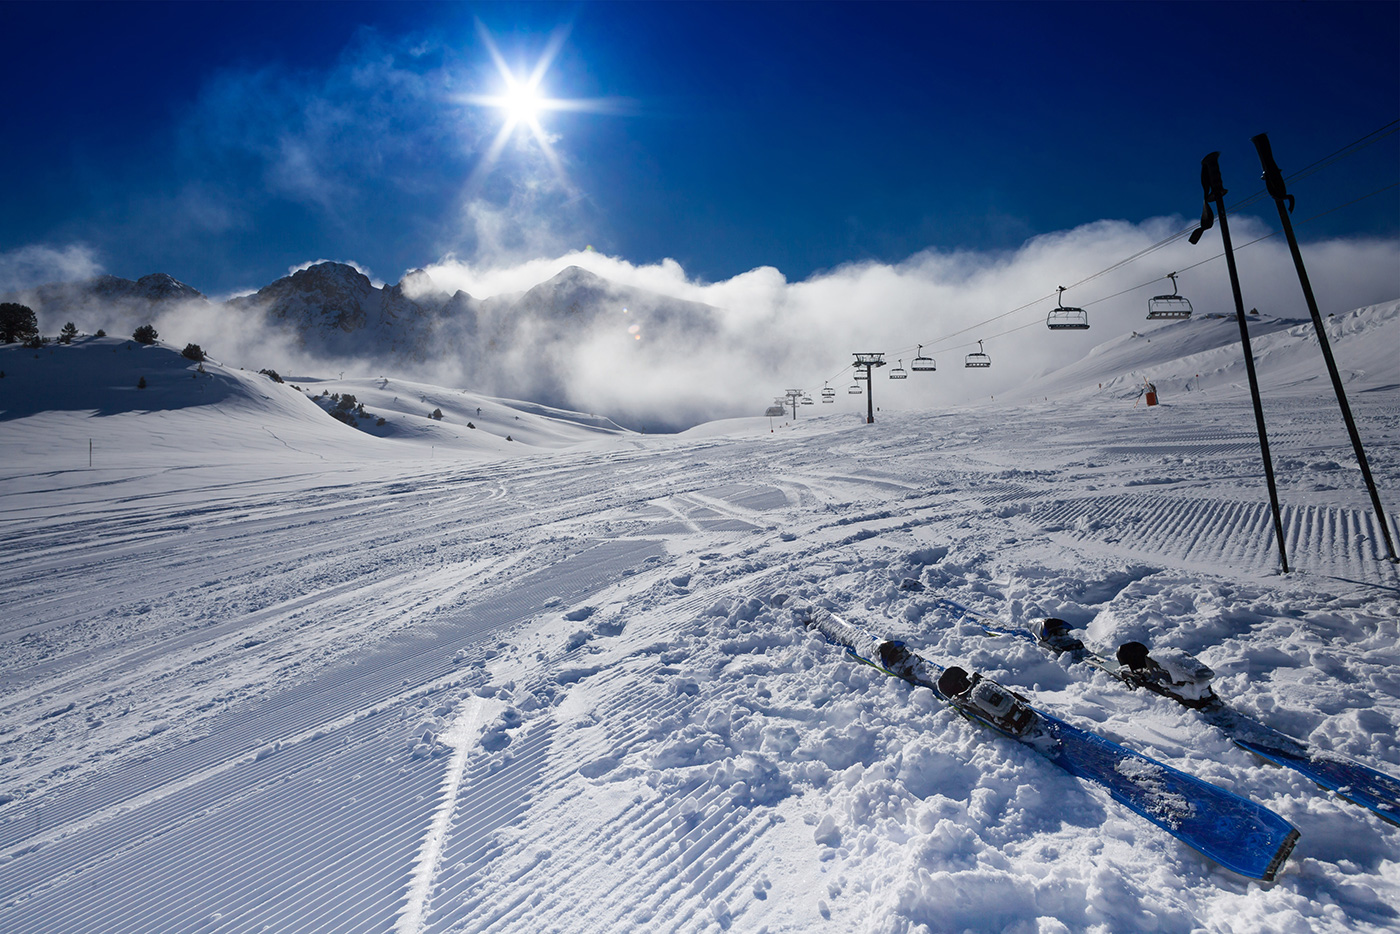 Grandvalira, Andorra - Destination Guide